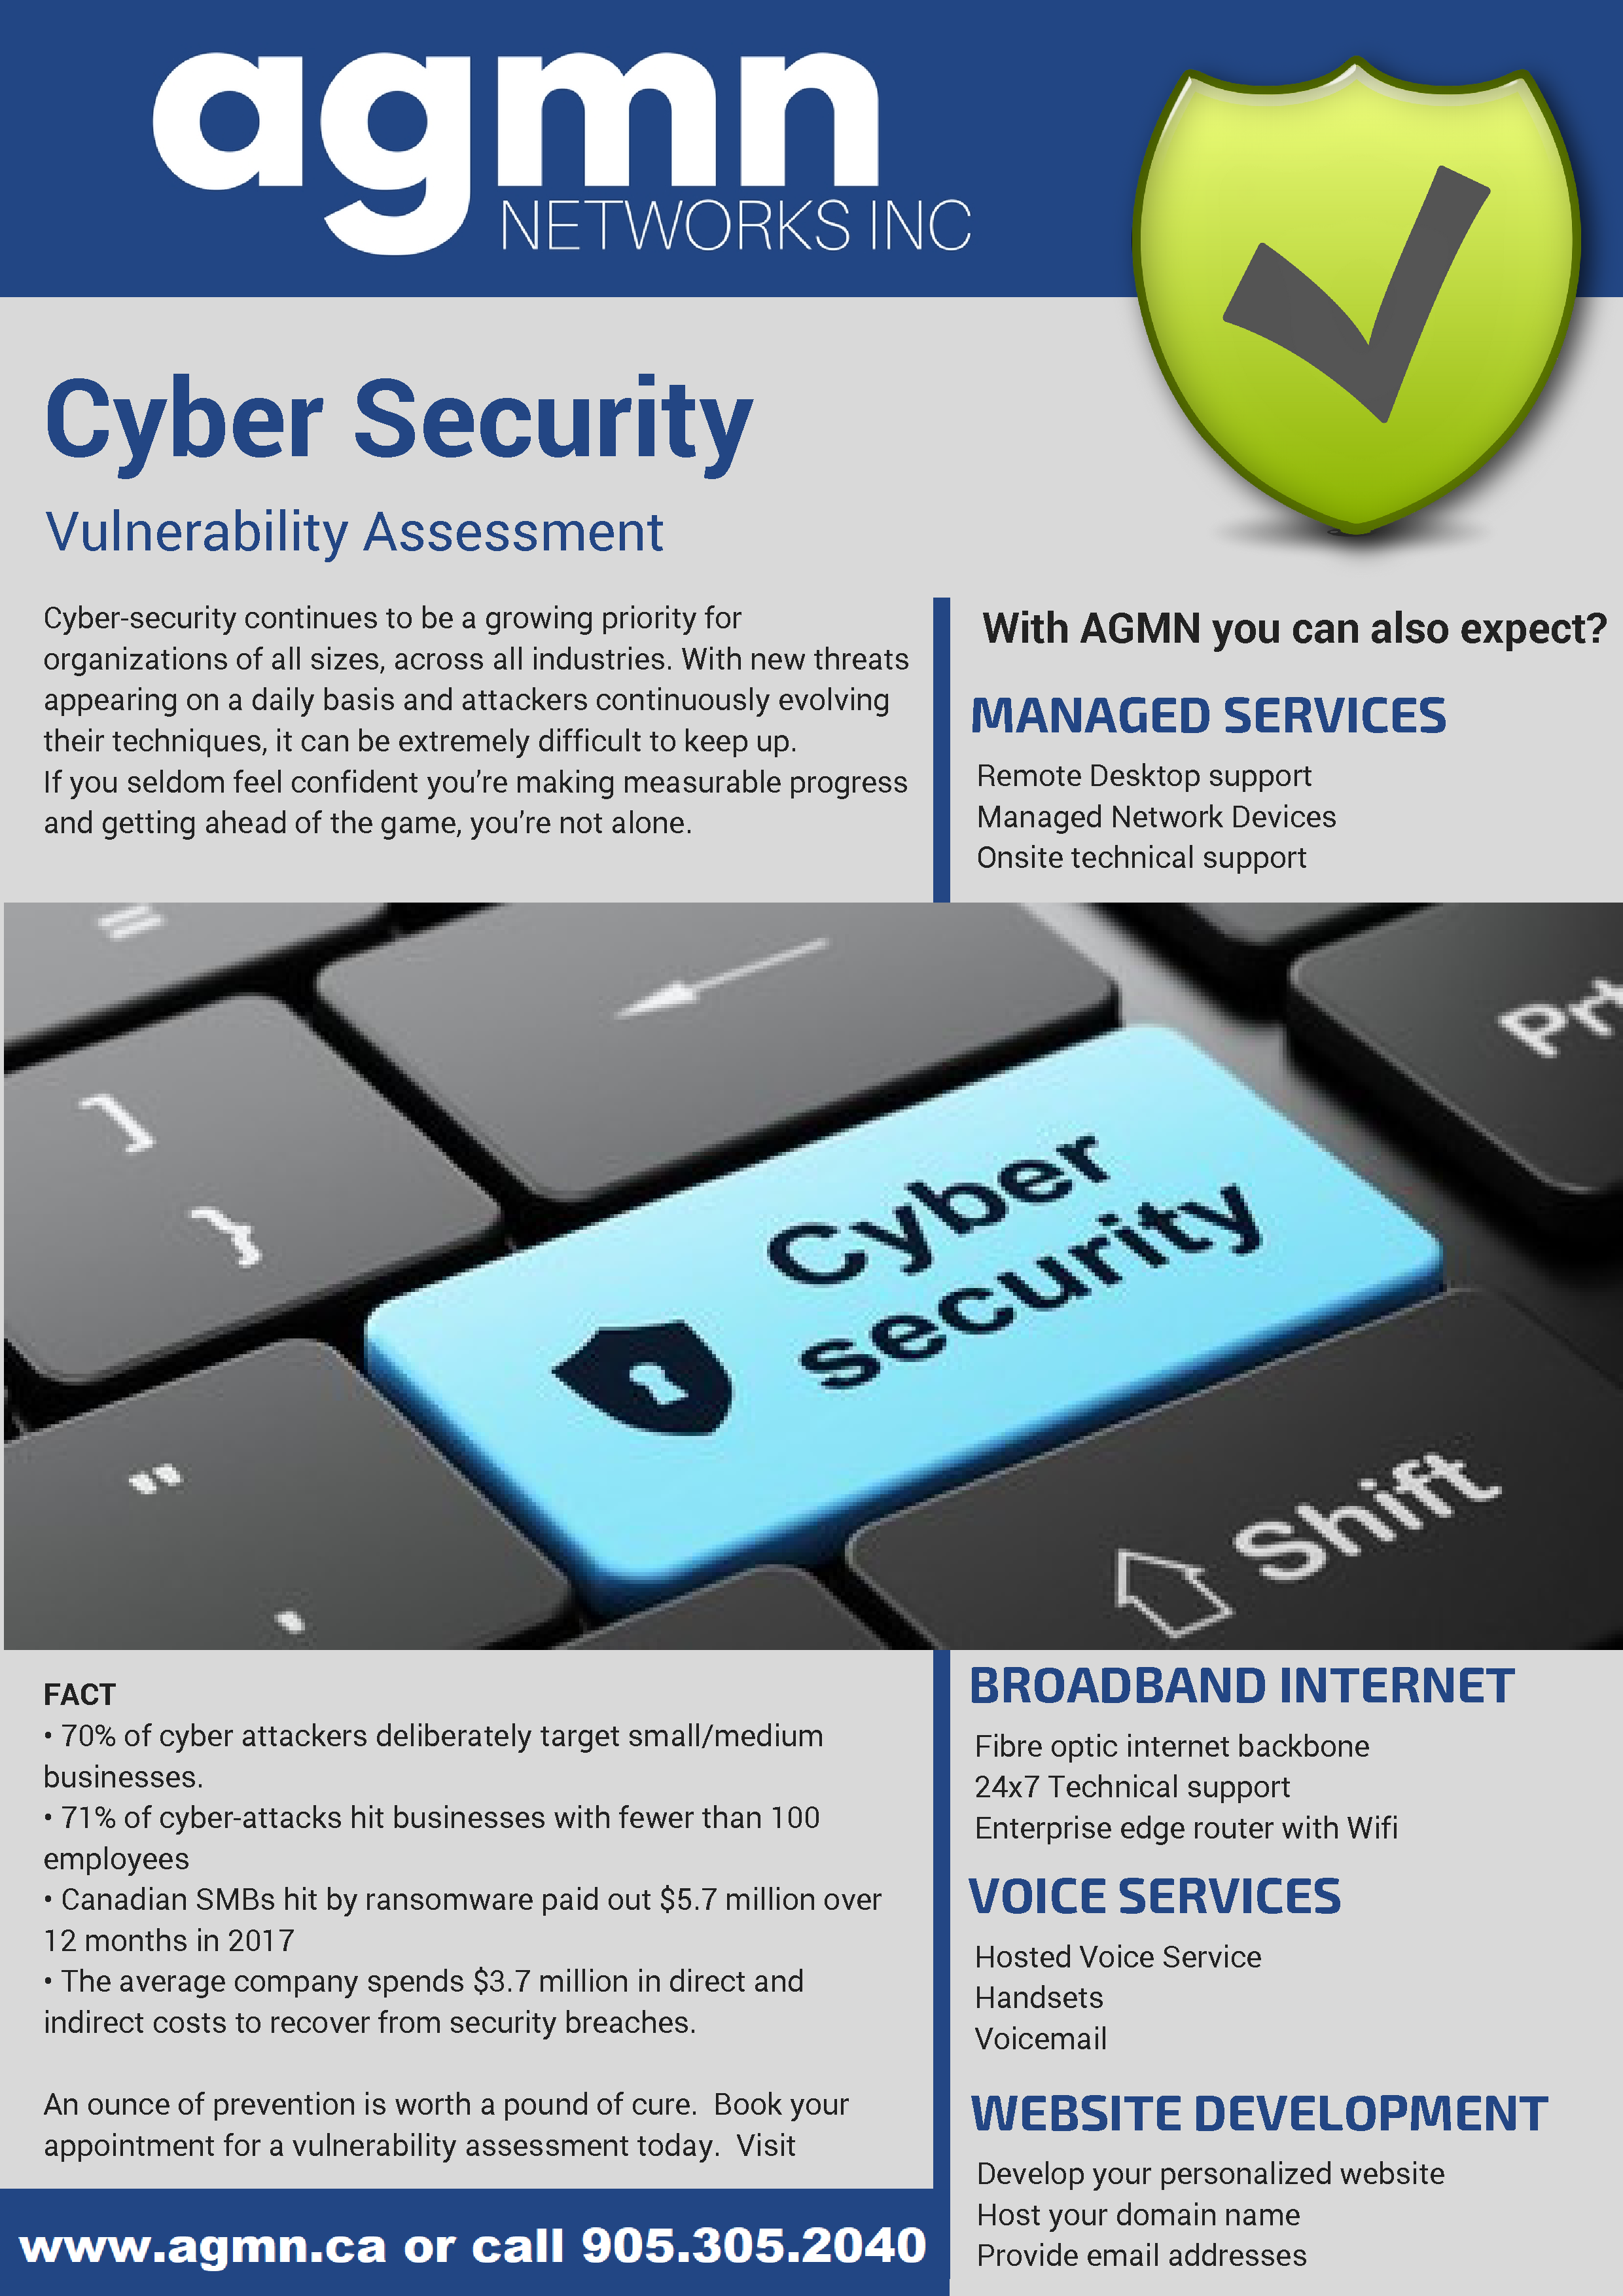 AGMN Cyber Security Brochure